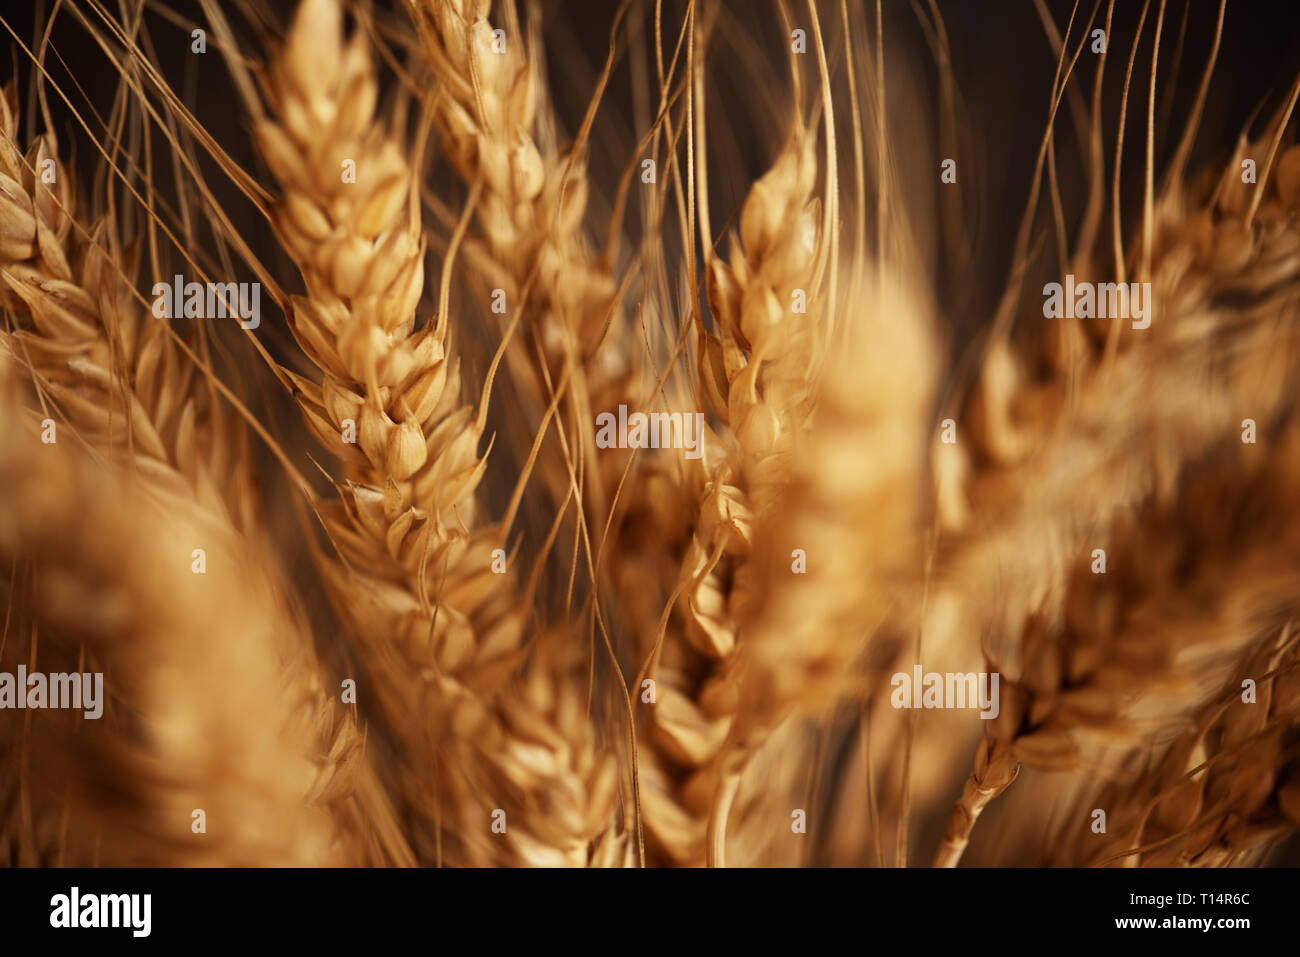 Cereals ears close-up, organic wheat, soft backround - Stock Image